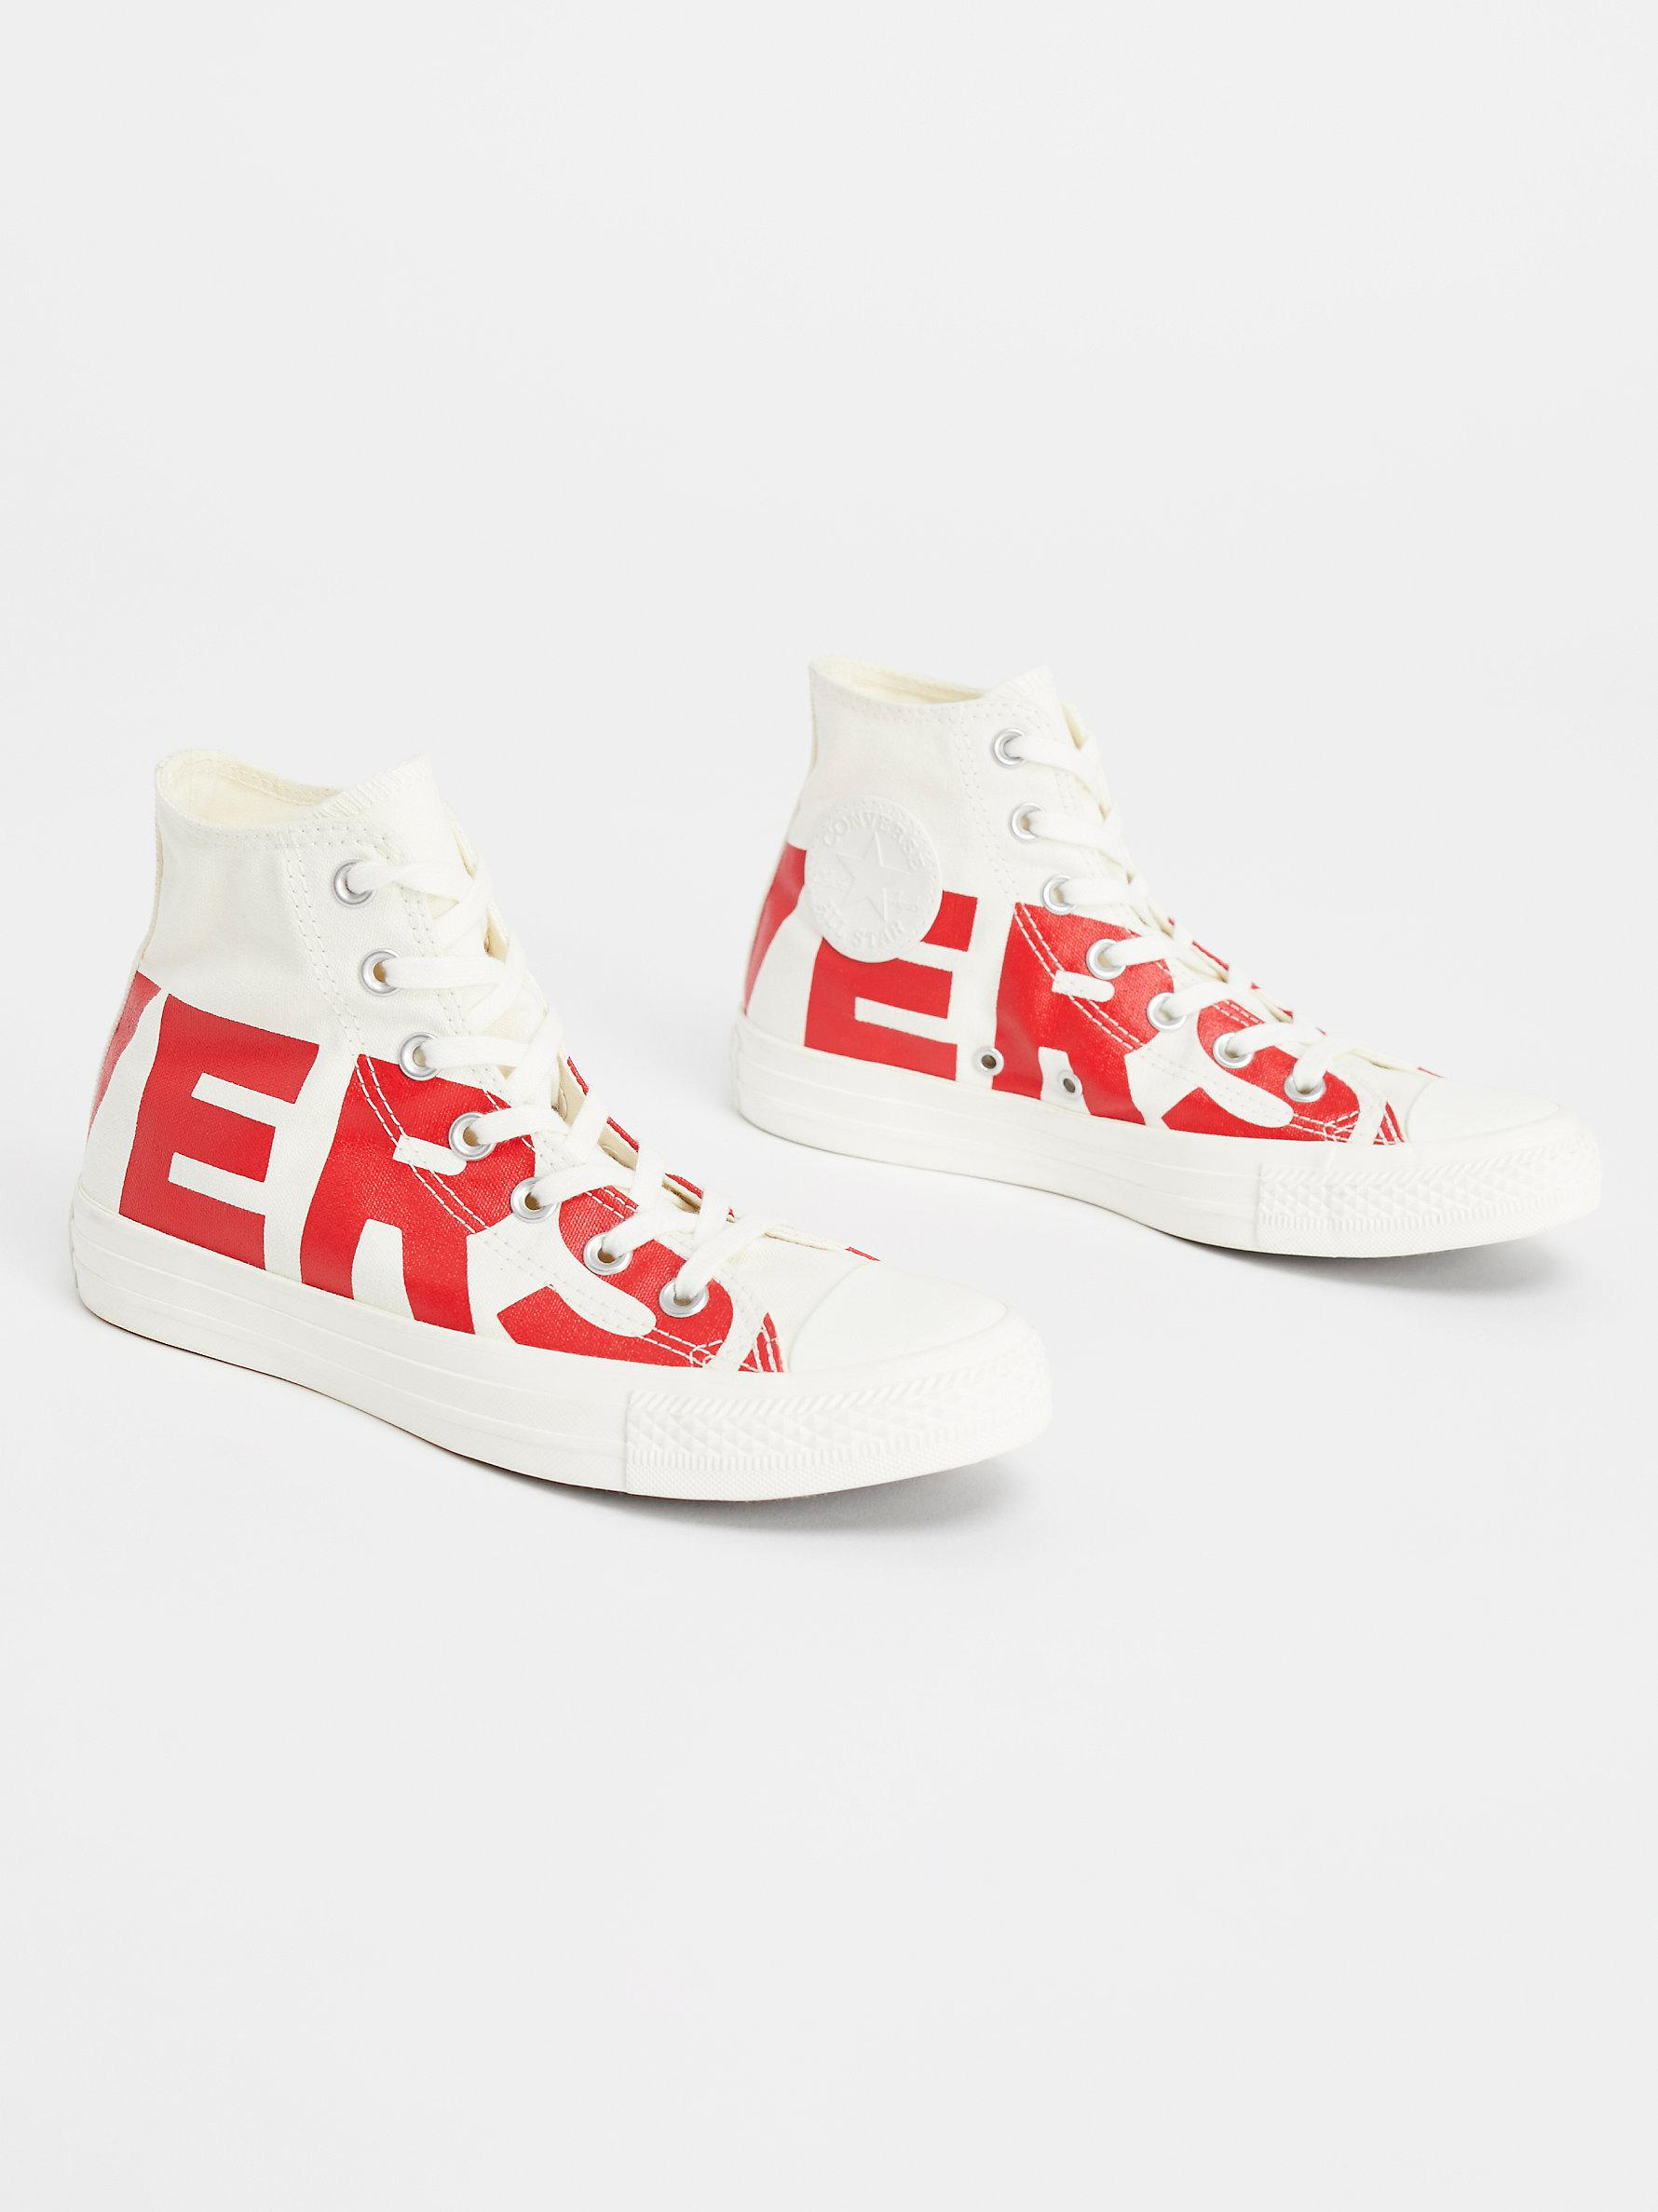 67686c7ce583 Lyst - Free People All Star Bold High Top Trainers in Red